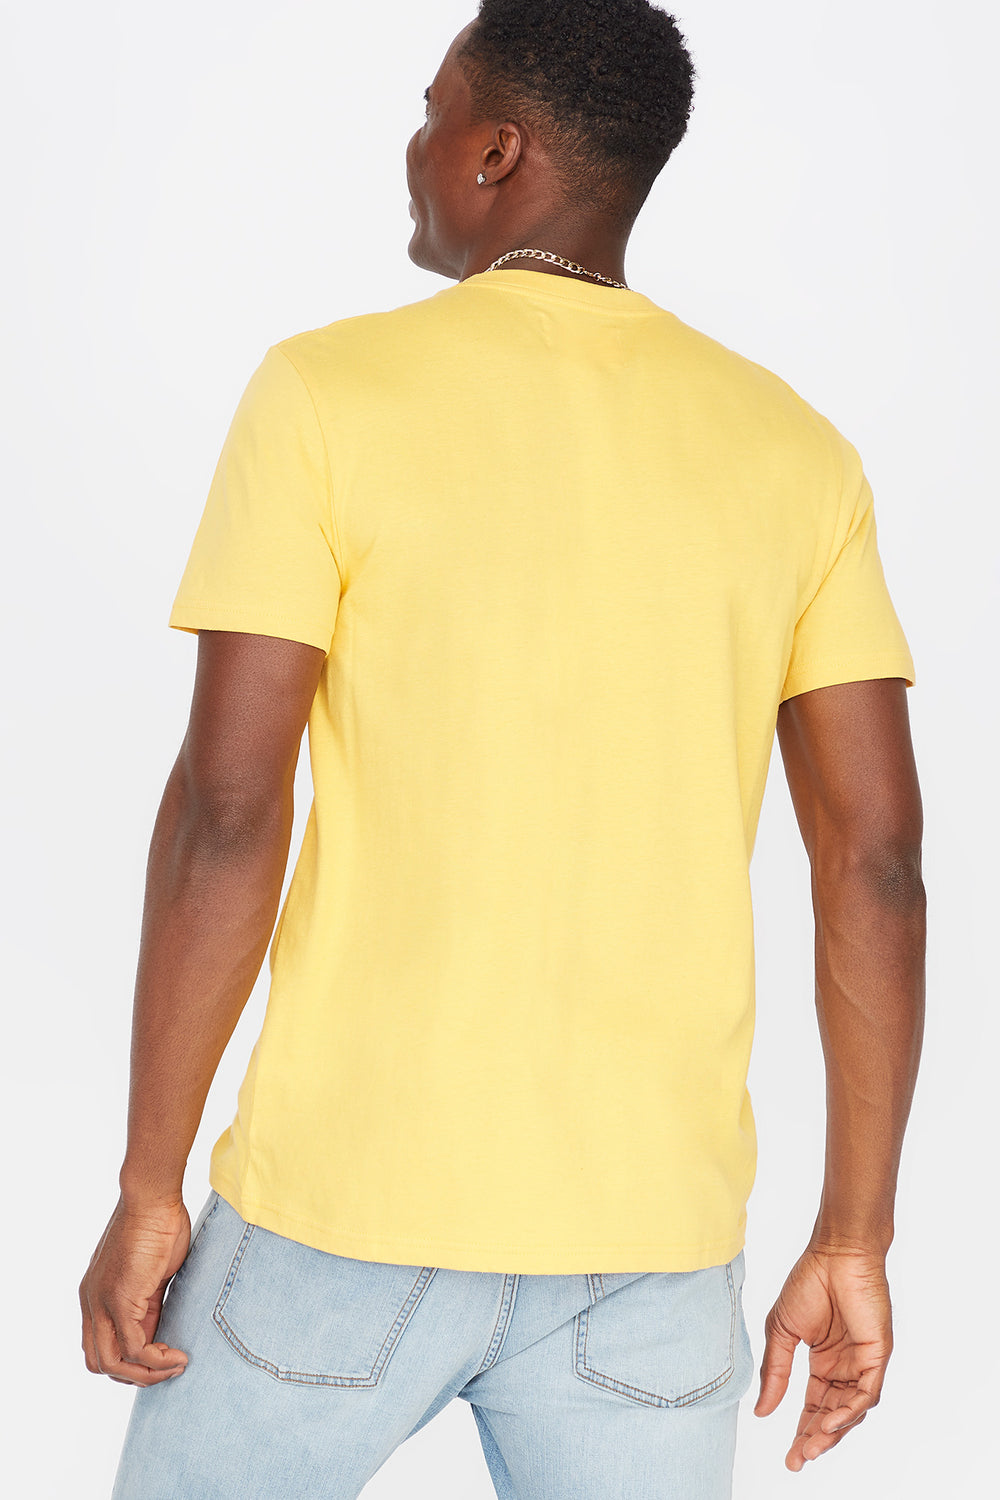 Everyday Basic Crew Neck T-Shirt Yellow